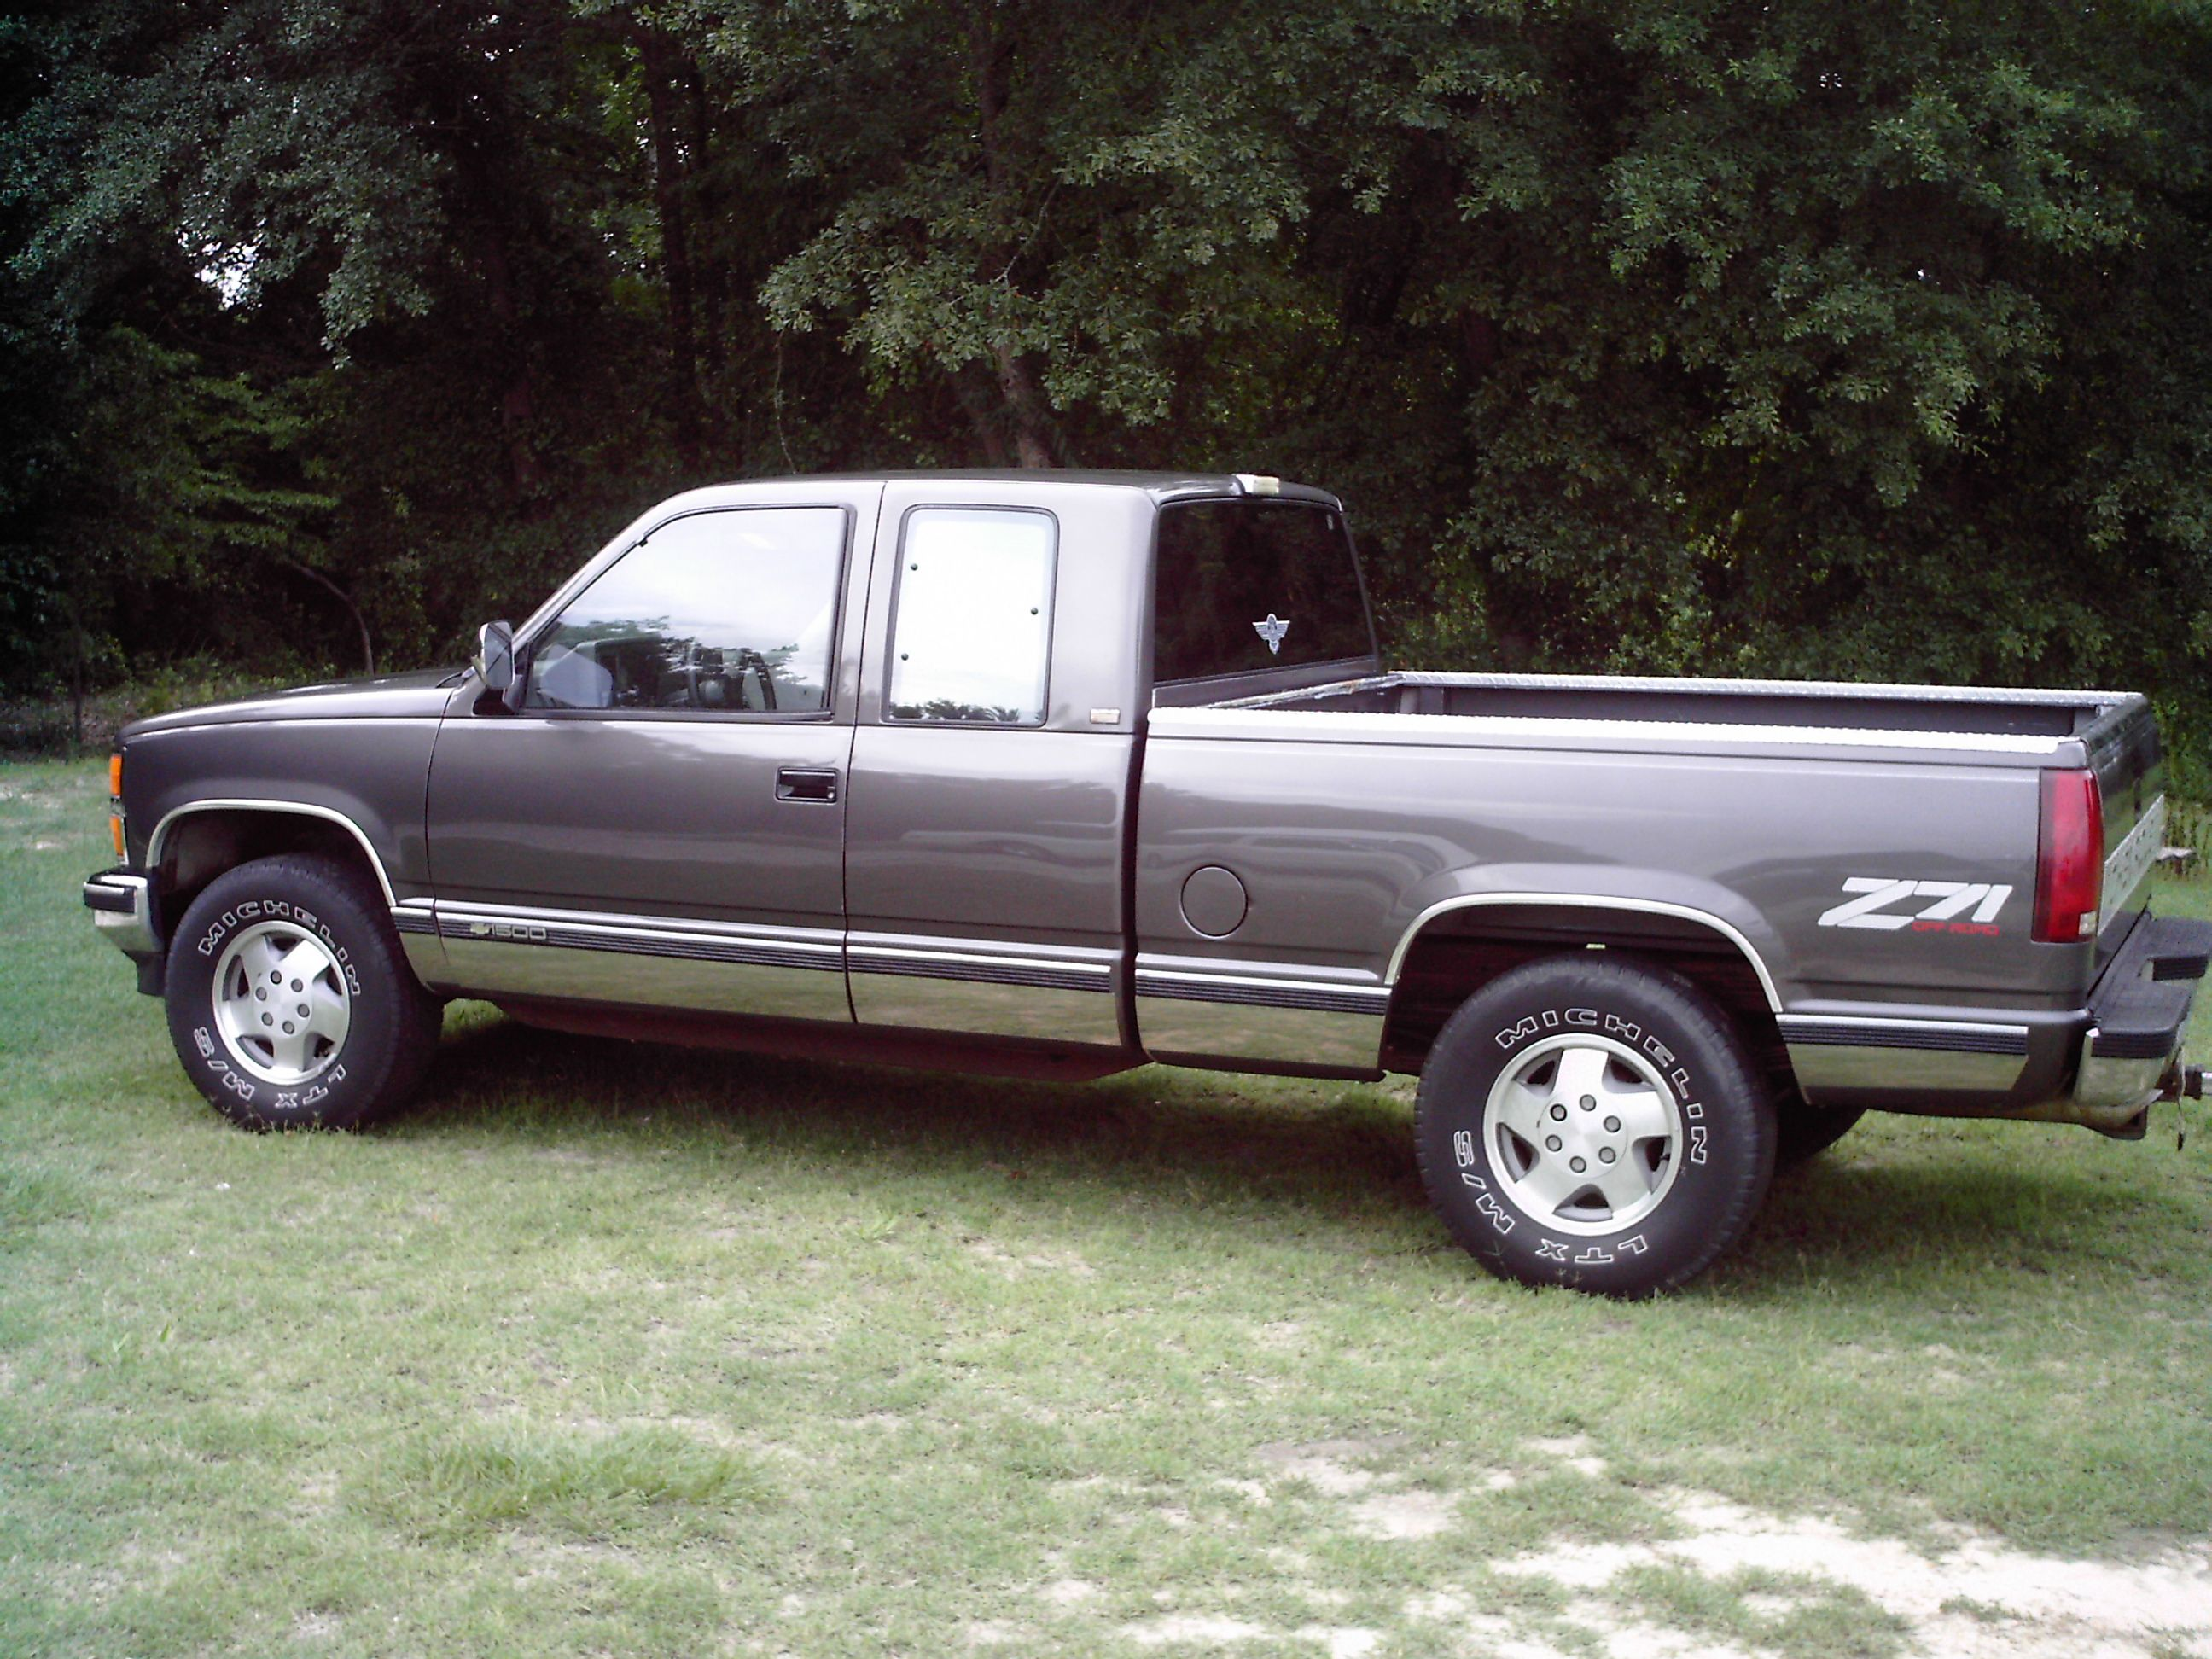 grey 1992 z71 chevy this was my daddy s ol truck i wish we still had it i want a truck just like this one but jacked up n with some big  [ 2592 x 1944 Pixel ]